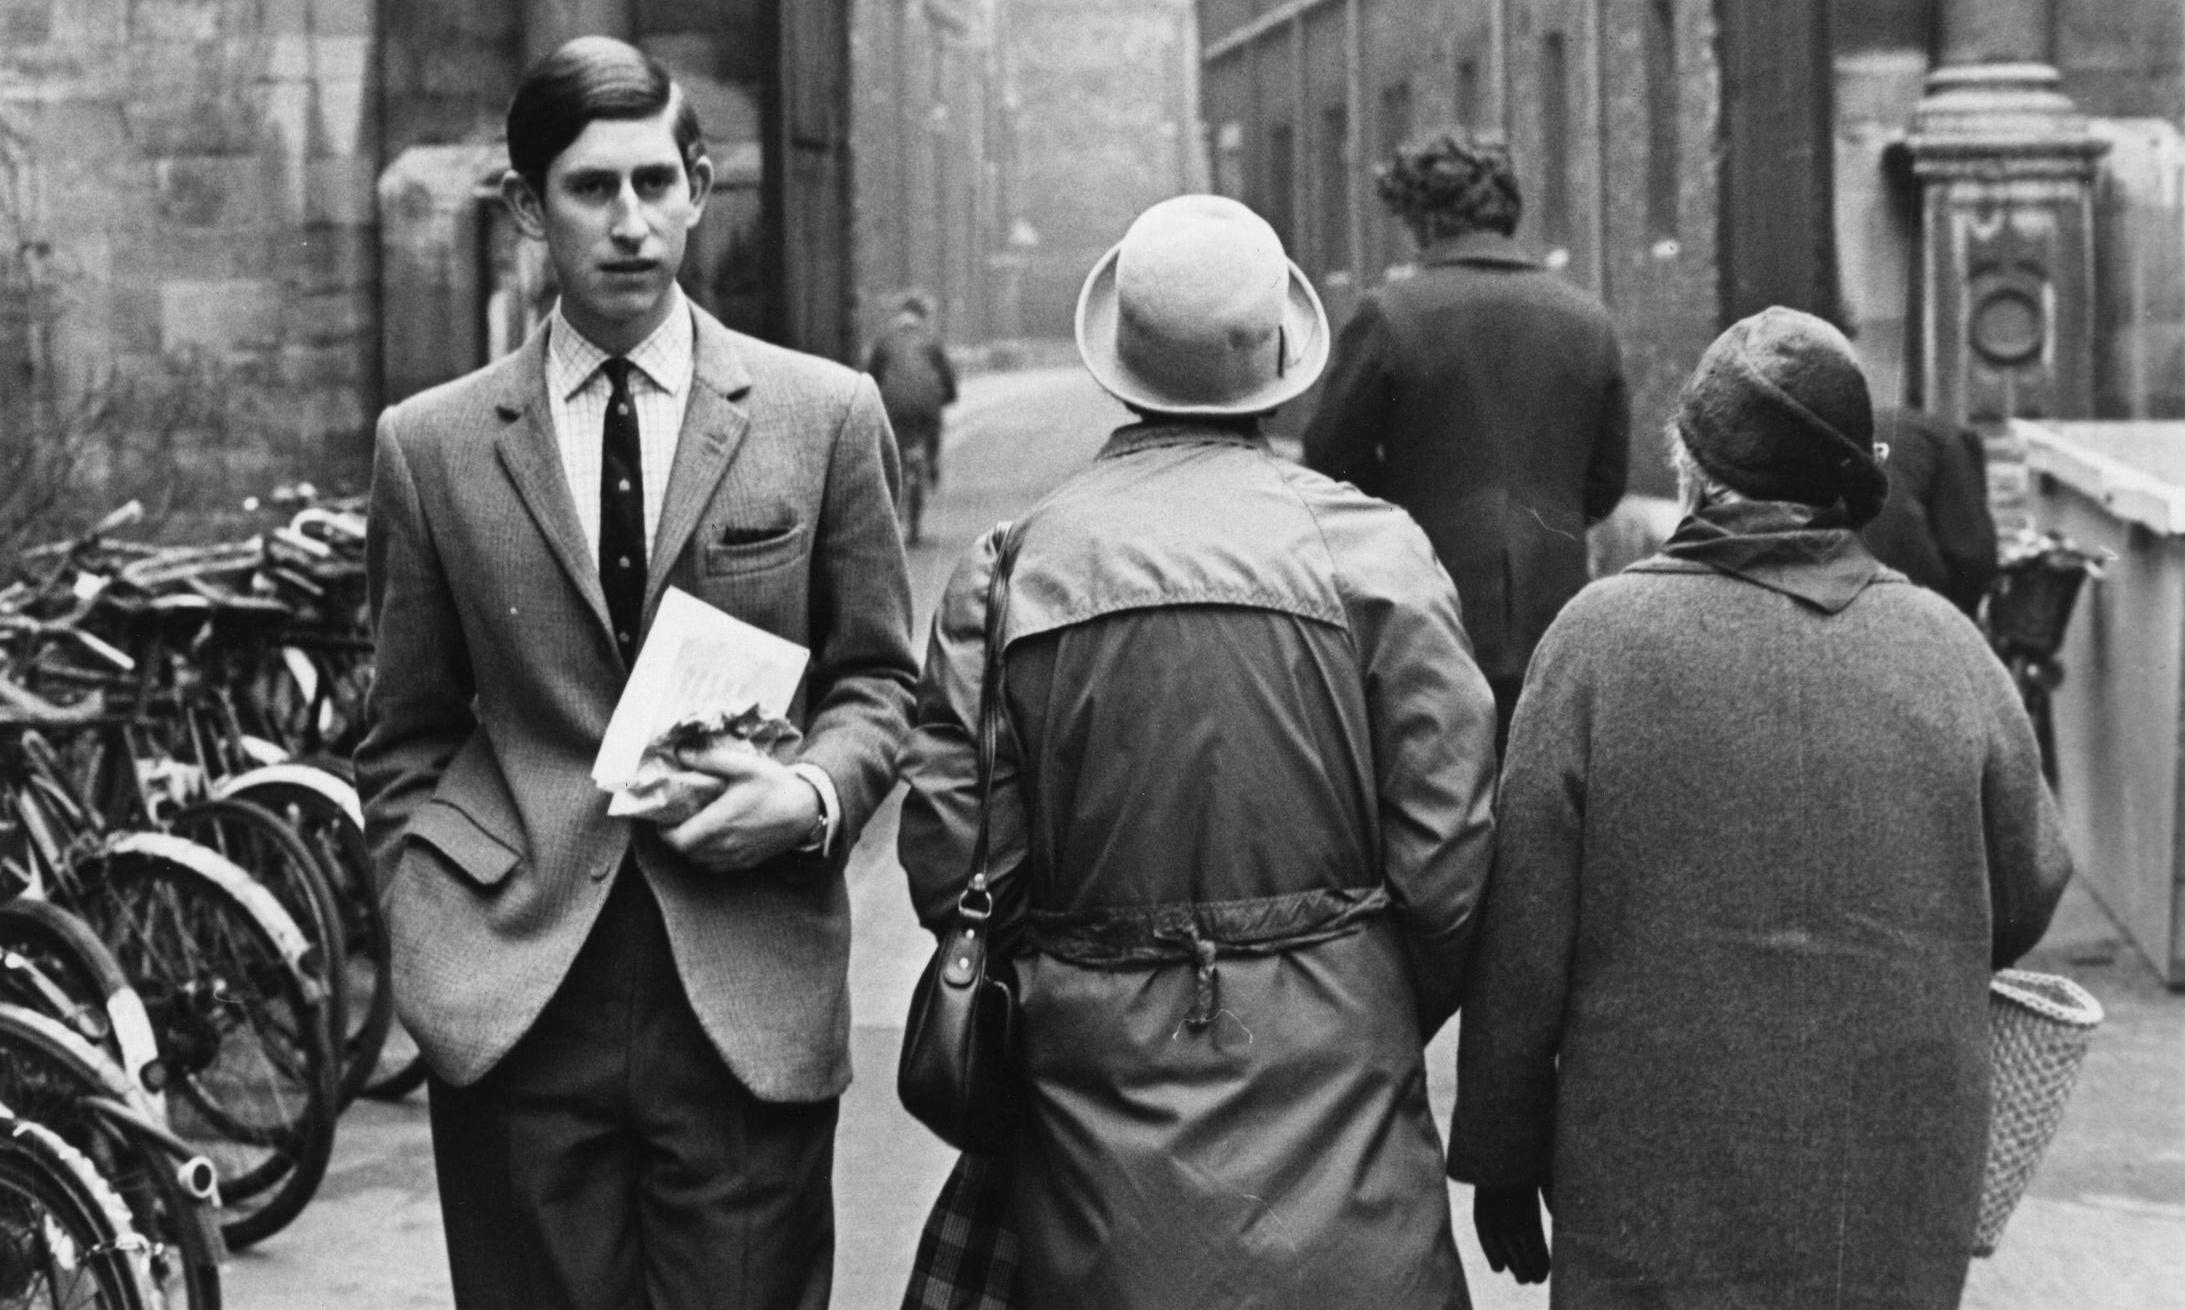 Prince of Wales settles in at Cambridge university – archive, 9 Oct 1967